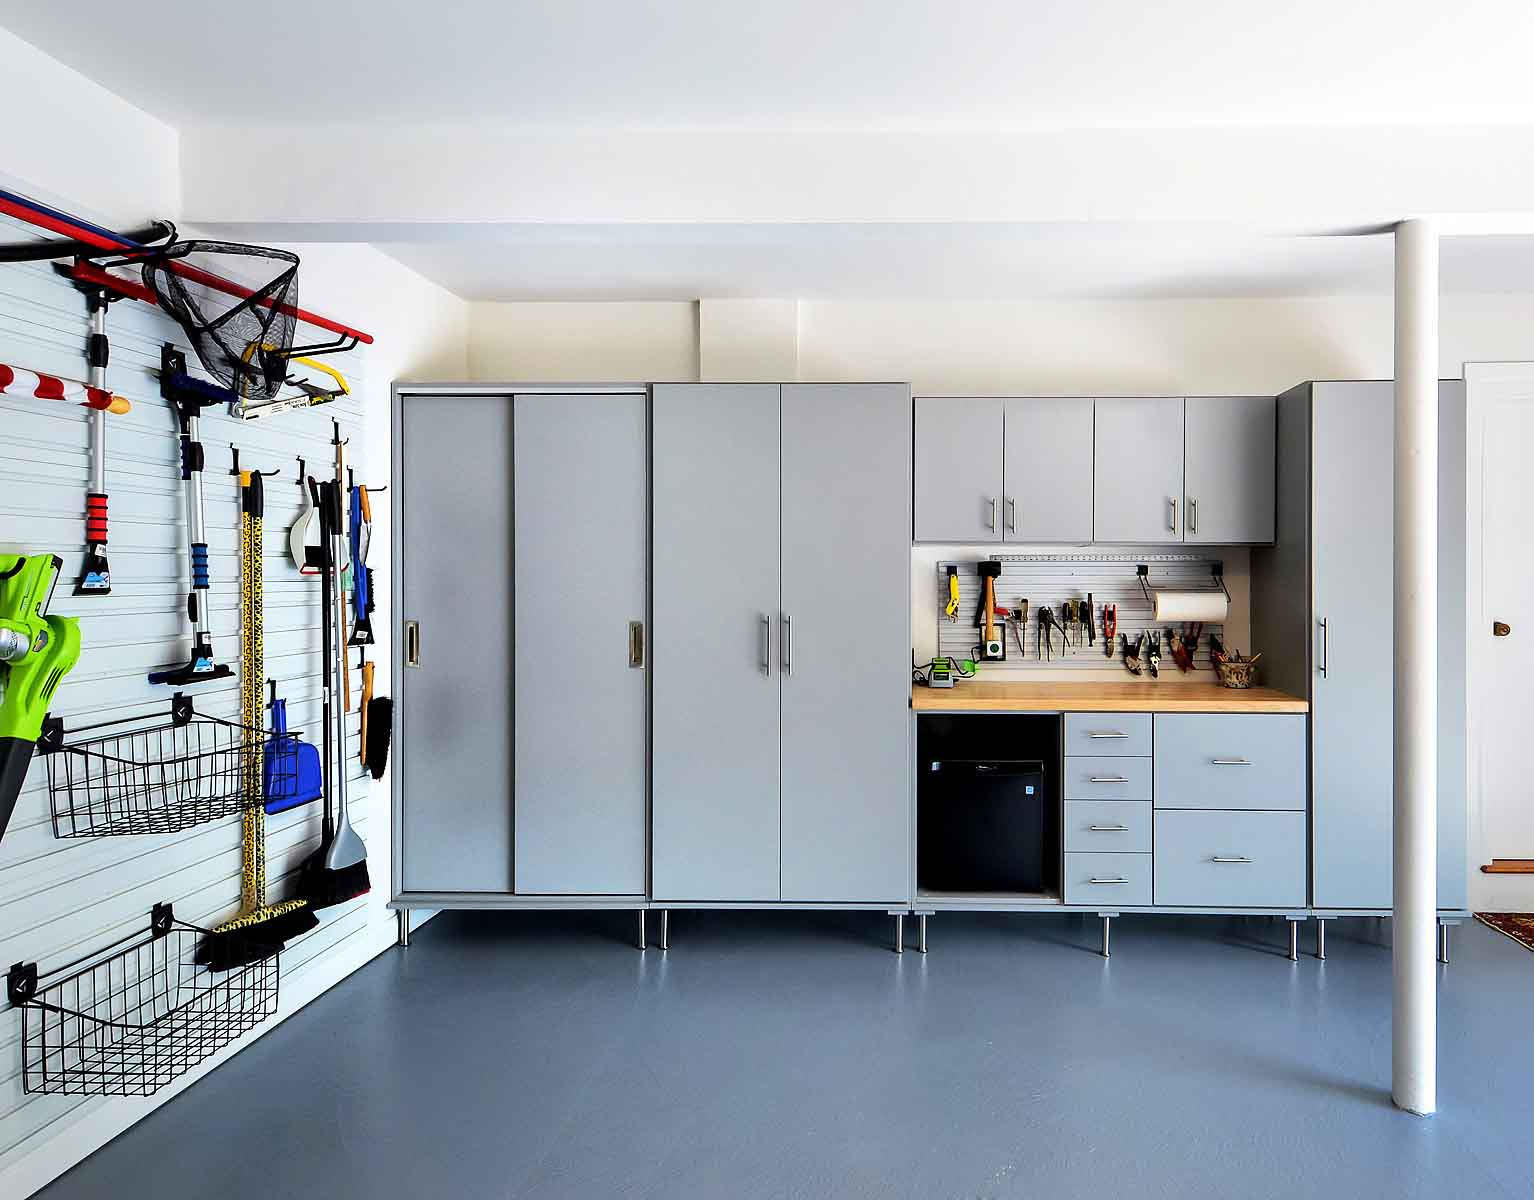 Organized garage with cabinets and wall system